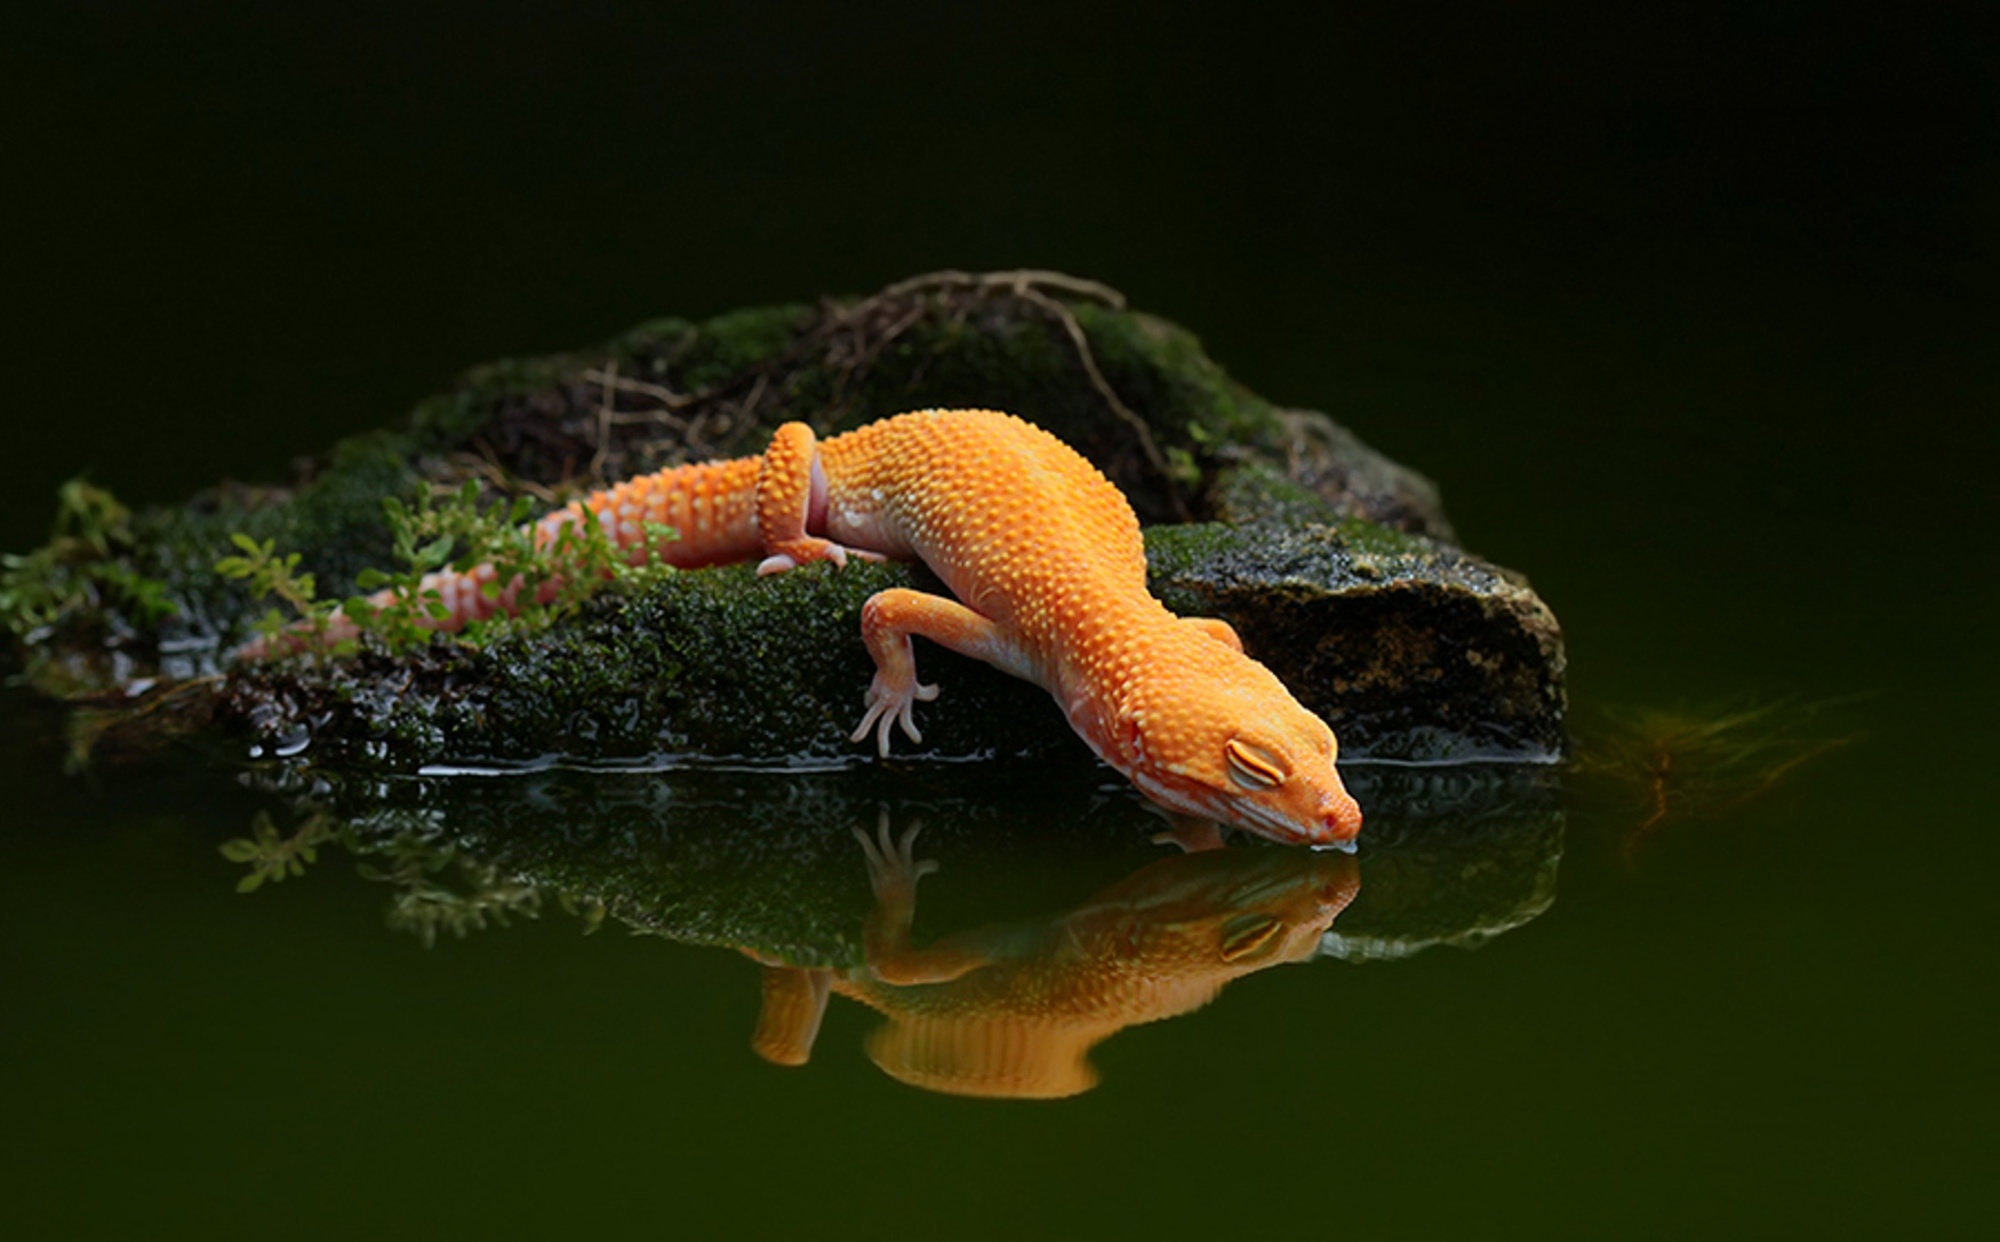 Cute Baby Lizards Wallpaper 4k Lizards Wallpapers High Quality Download Free